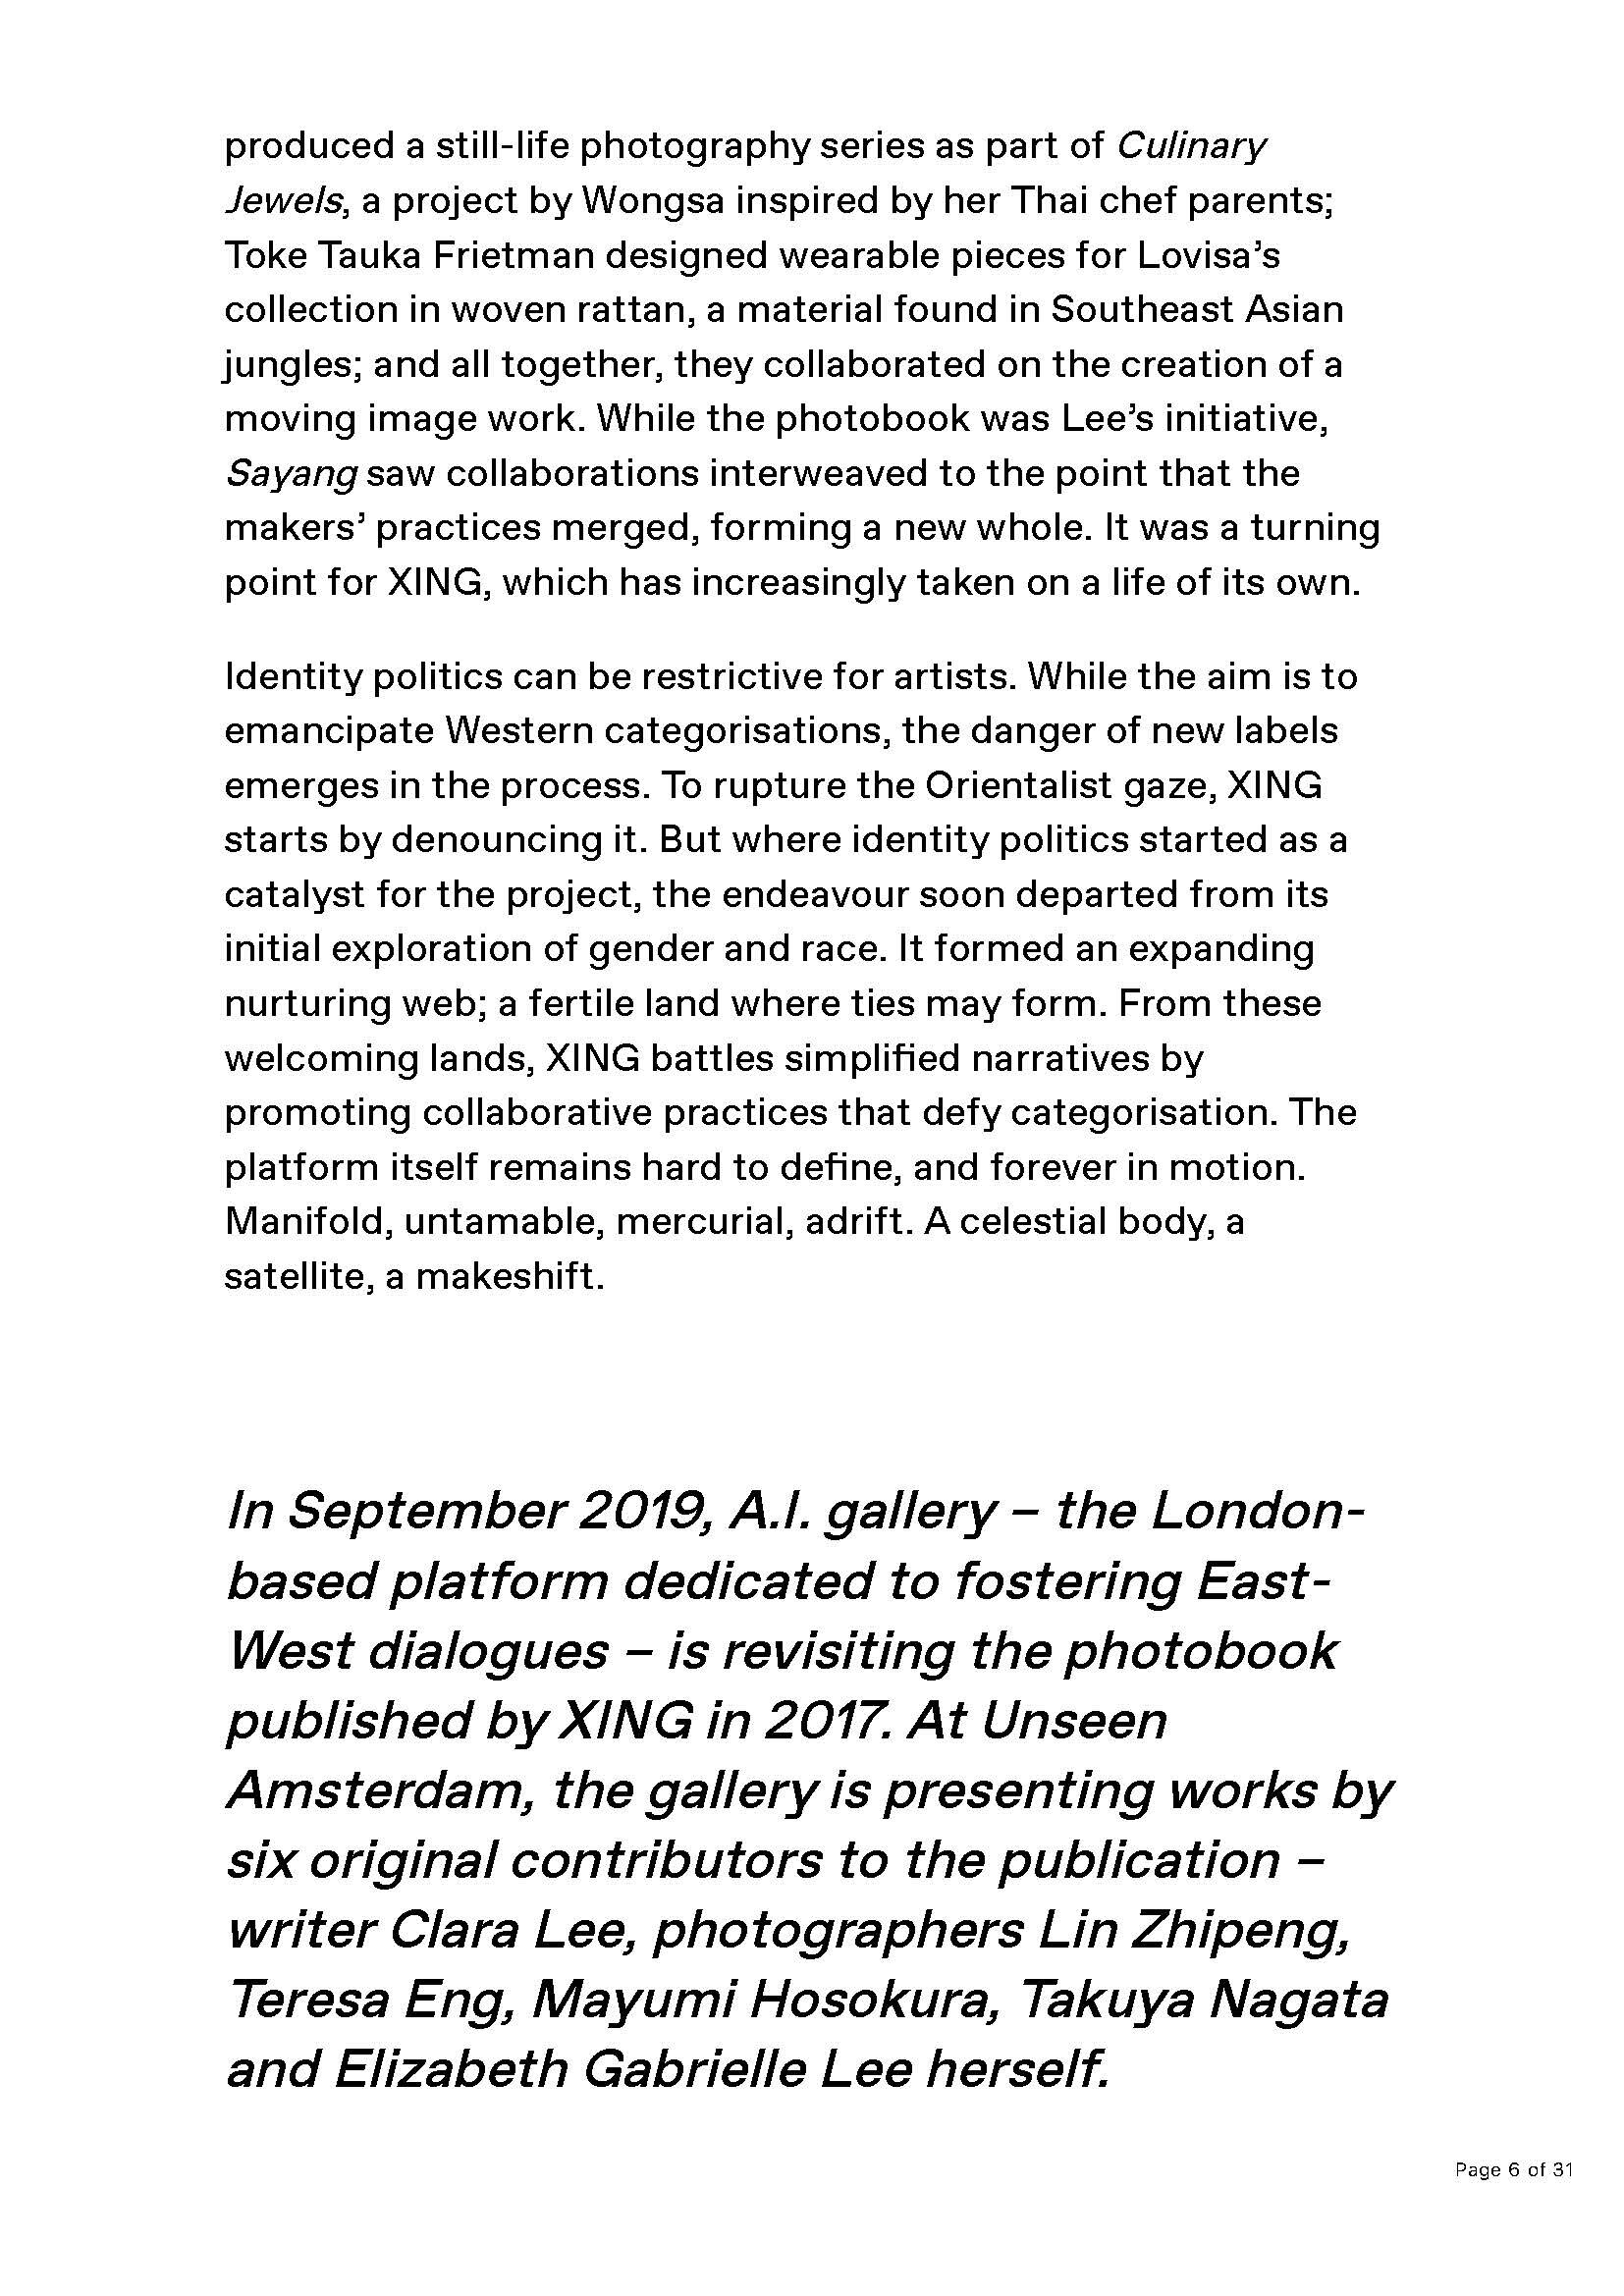 XING by Jade Barget, Unseen Amsterdam 2019, A.I. Gallery. Elizabeth Gabrielle Lee. News _Page_06.jpg